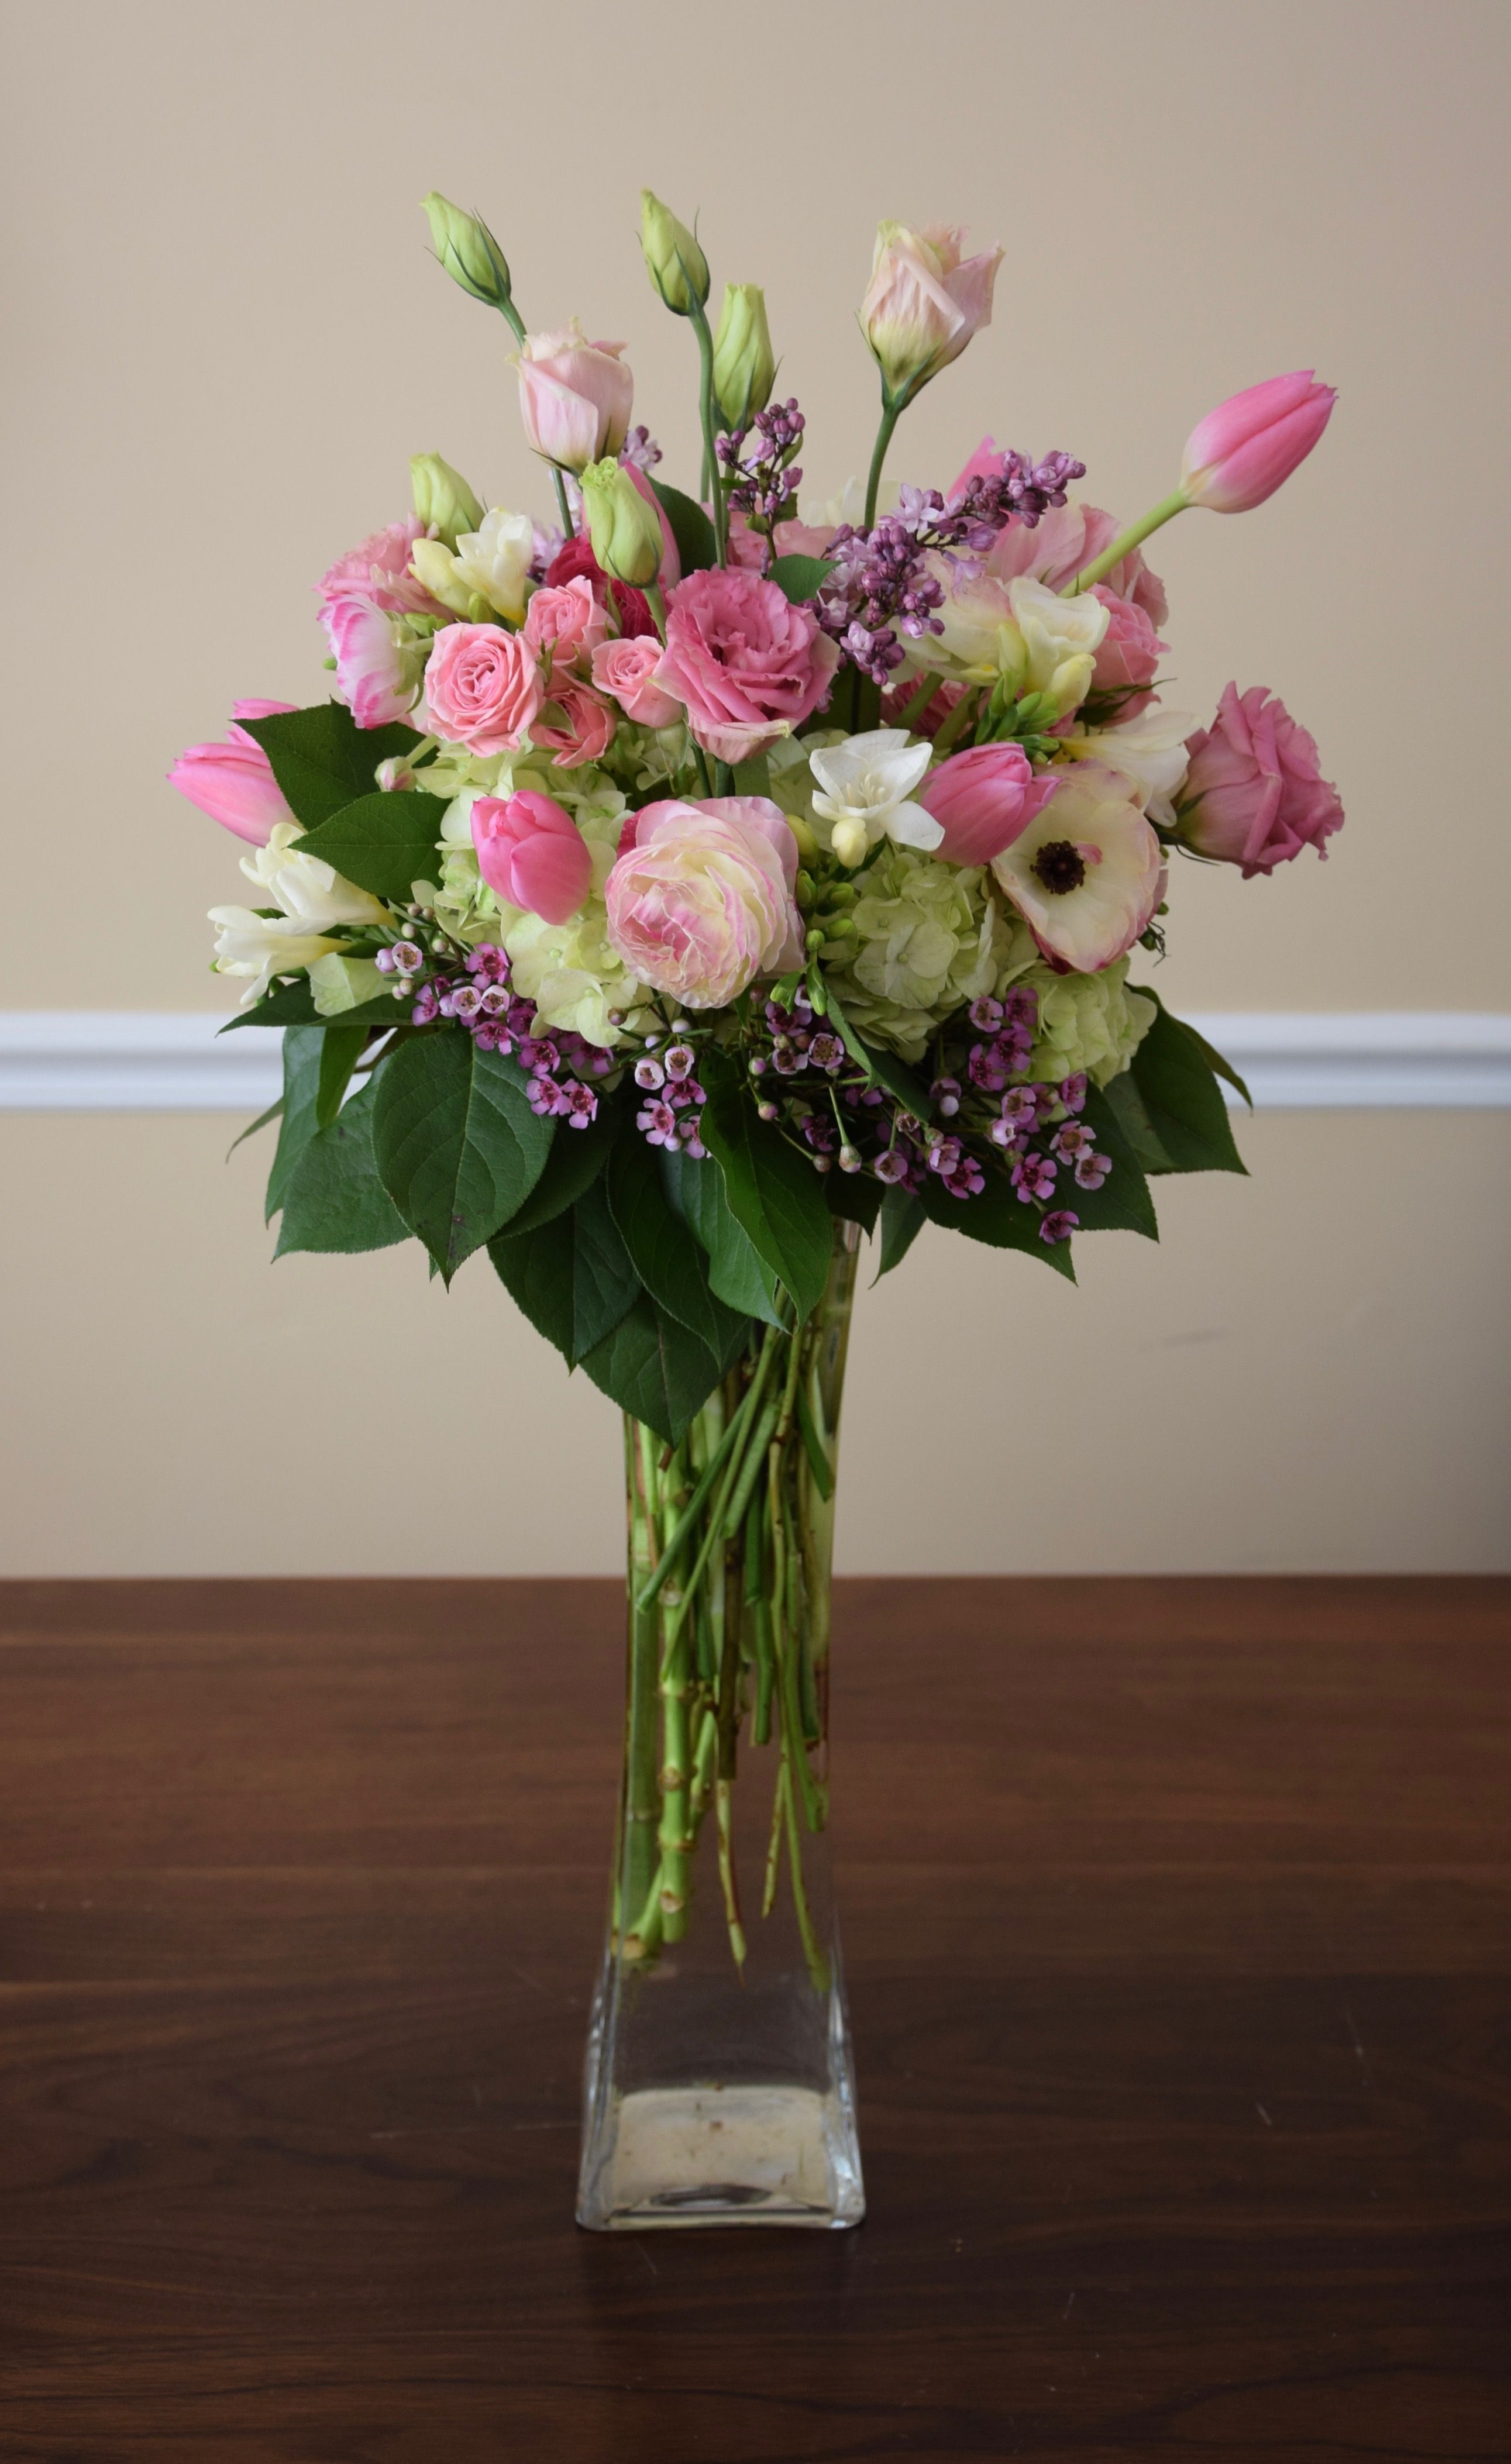 Birthday Flowers With Pink Tulips Pink Lisianthus Spray Roses Anemones Freesia Wax An Creative Flower Arrangements Flower Arrangements Floral Arrangements